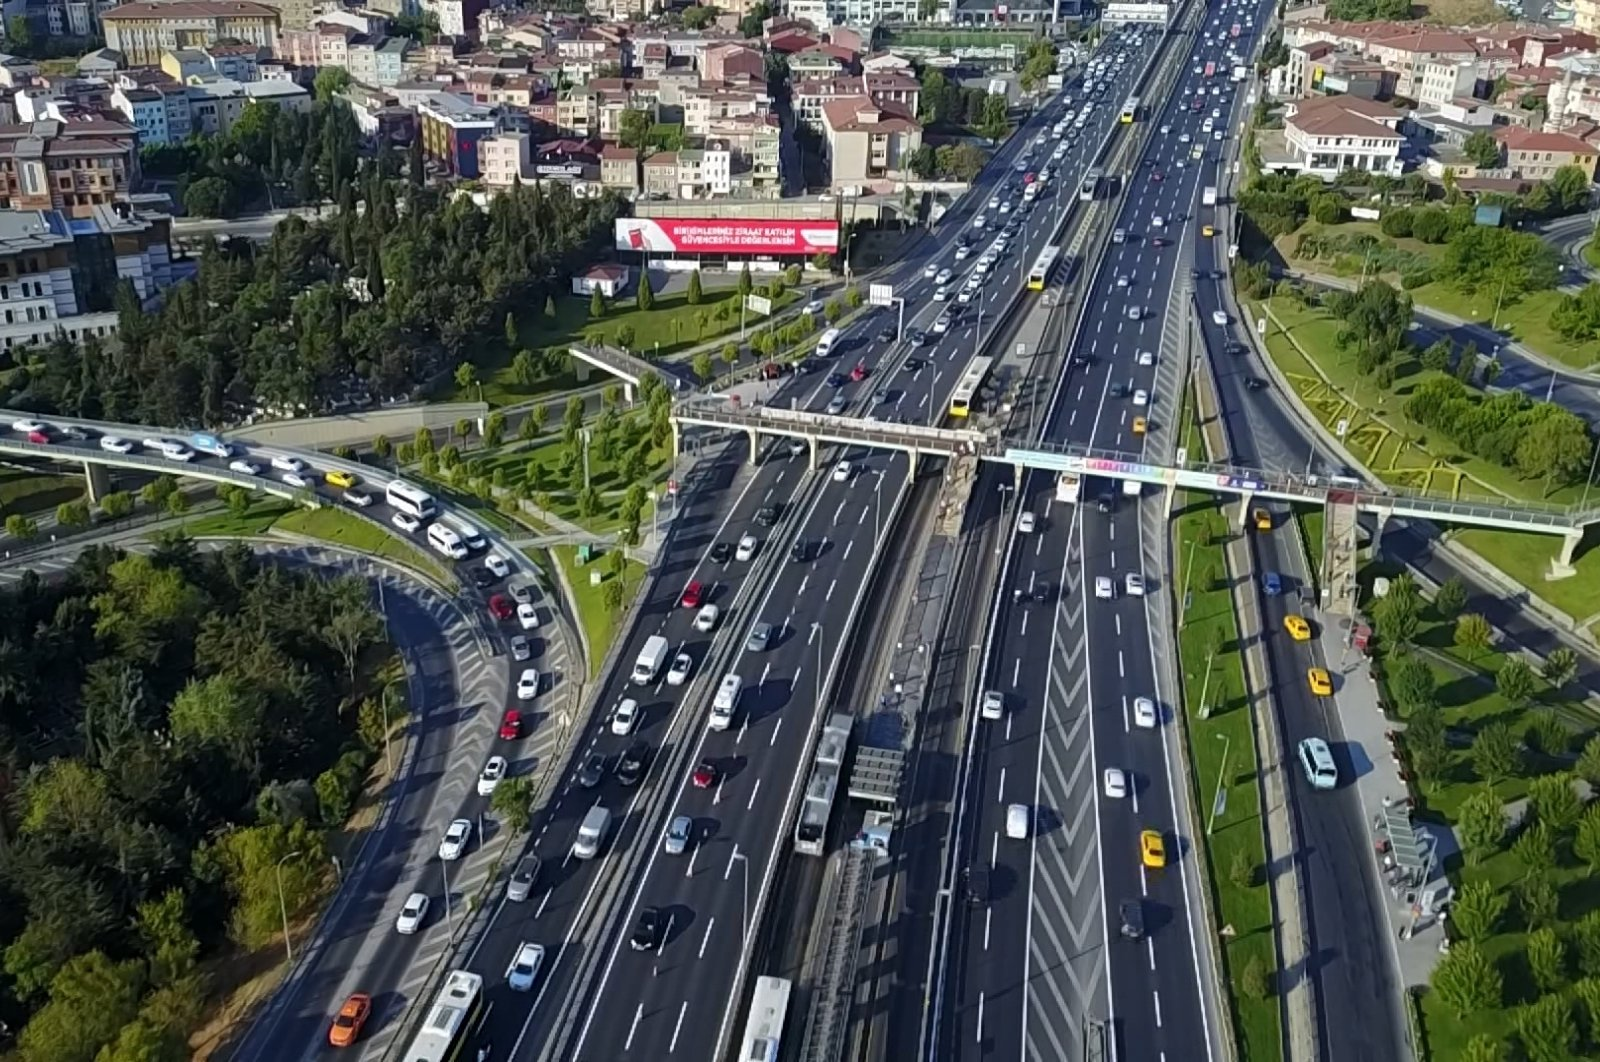 Automobiles in the Ayvansaray section of the D-100 highway in Istanbul, Turkey, Aug. 10, 2020. (DHA Photo)